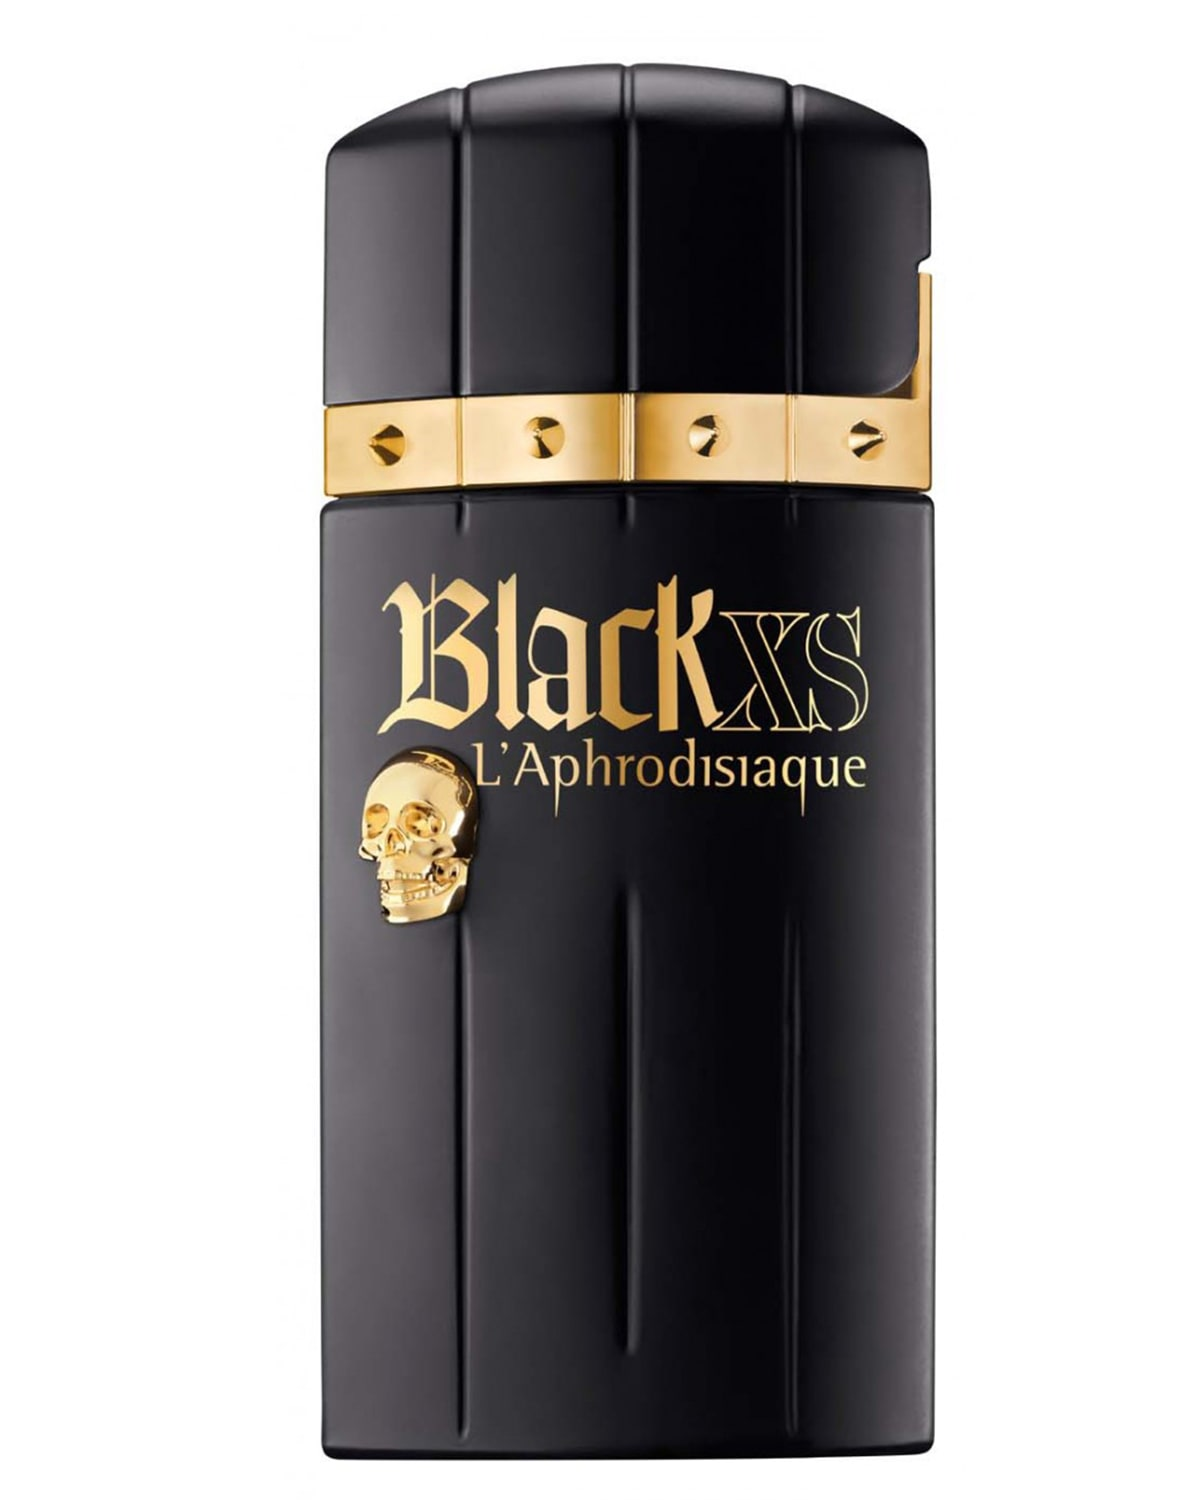 Paco Rabanne Black XS L'Aphrodisiaque for Men